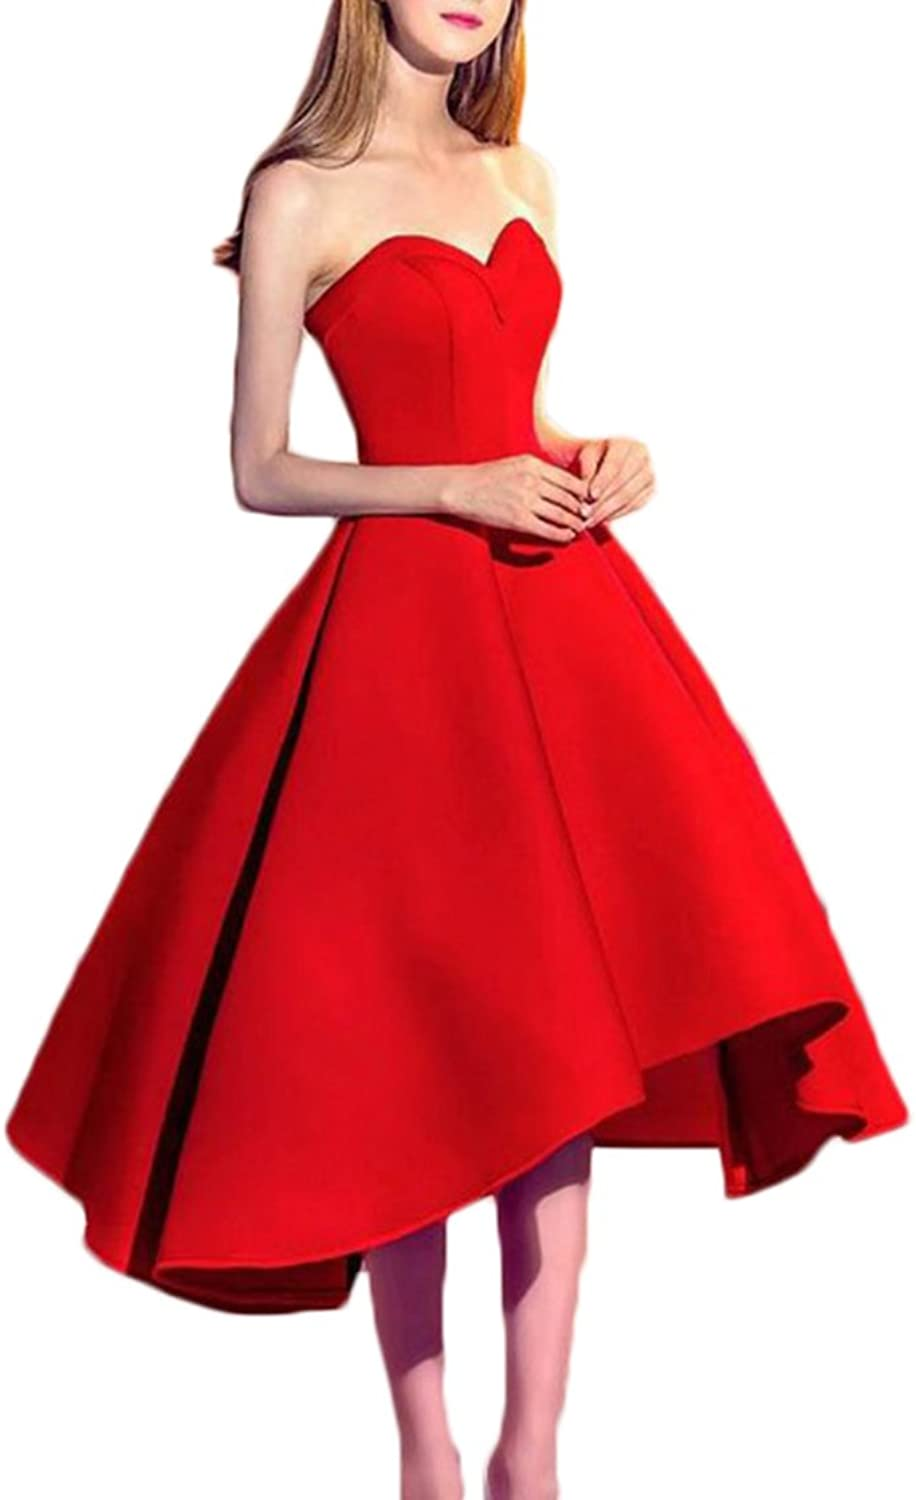 Alilith.Z Sexy Sweetheart Princess Homecoming Dresses 2018 Tea Length Formal Prom Party Gowns for Women High Low